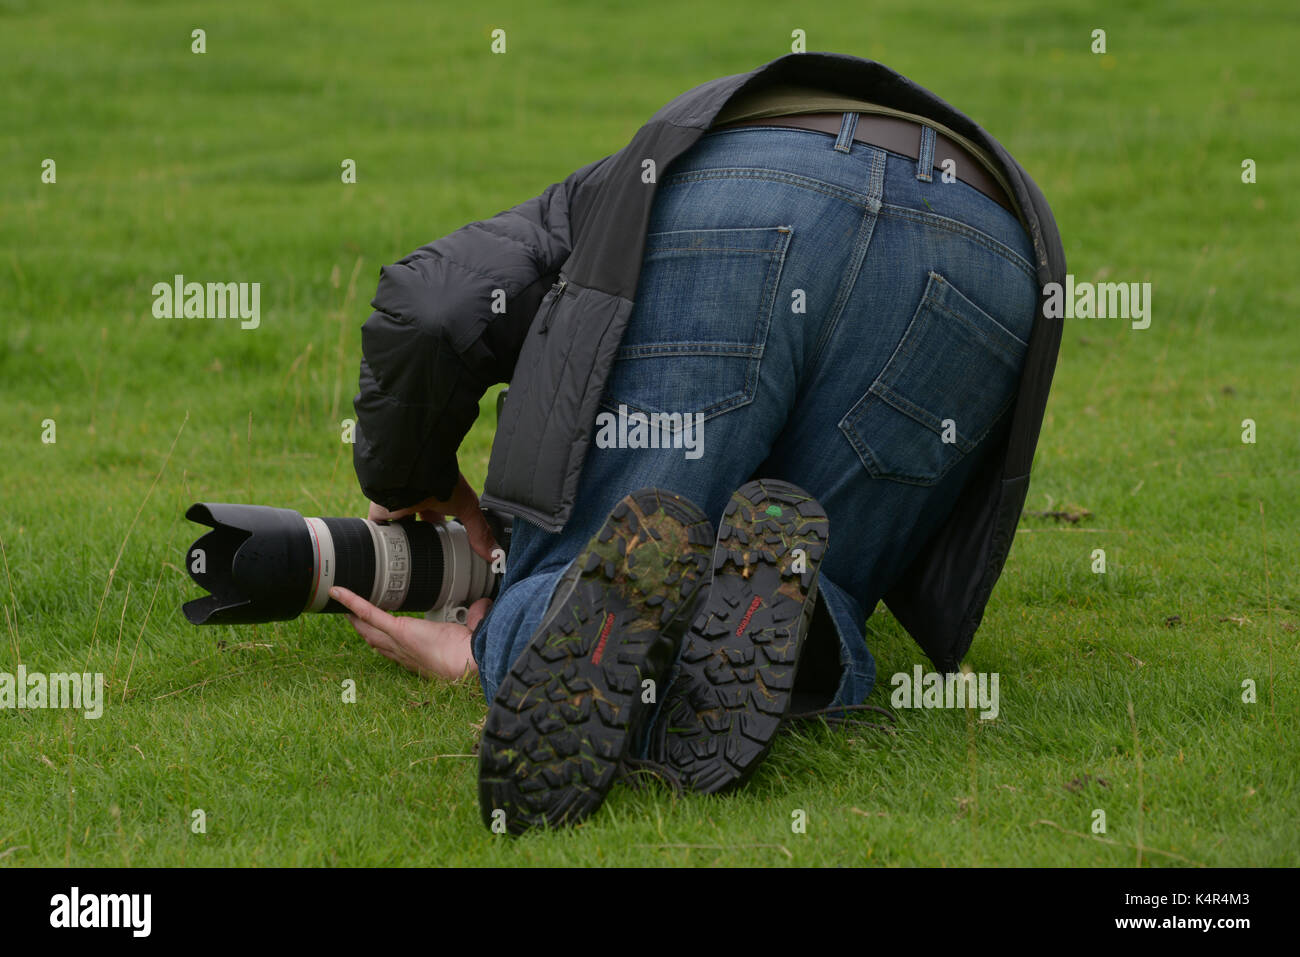 A photographer taking a picture in a strange position. - Stock Image